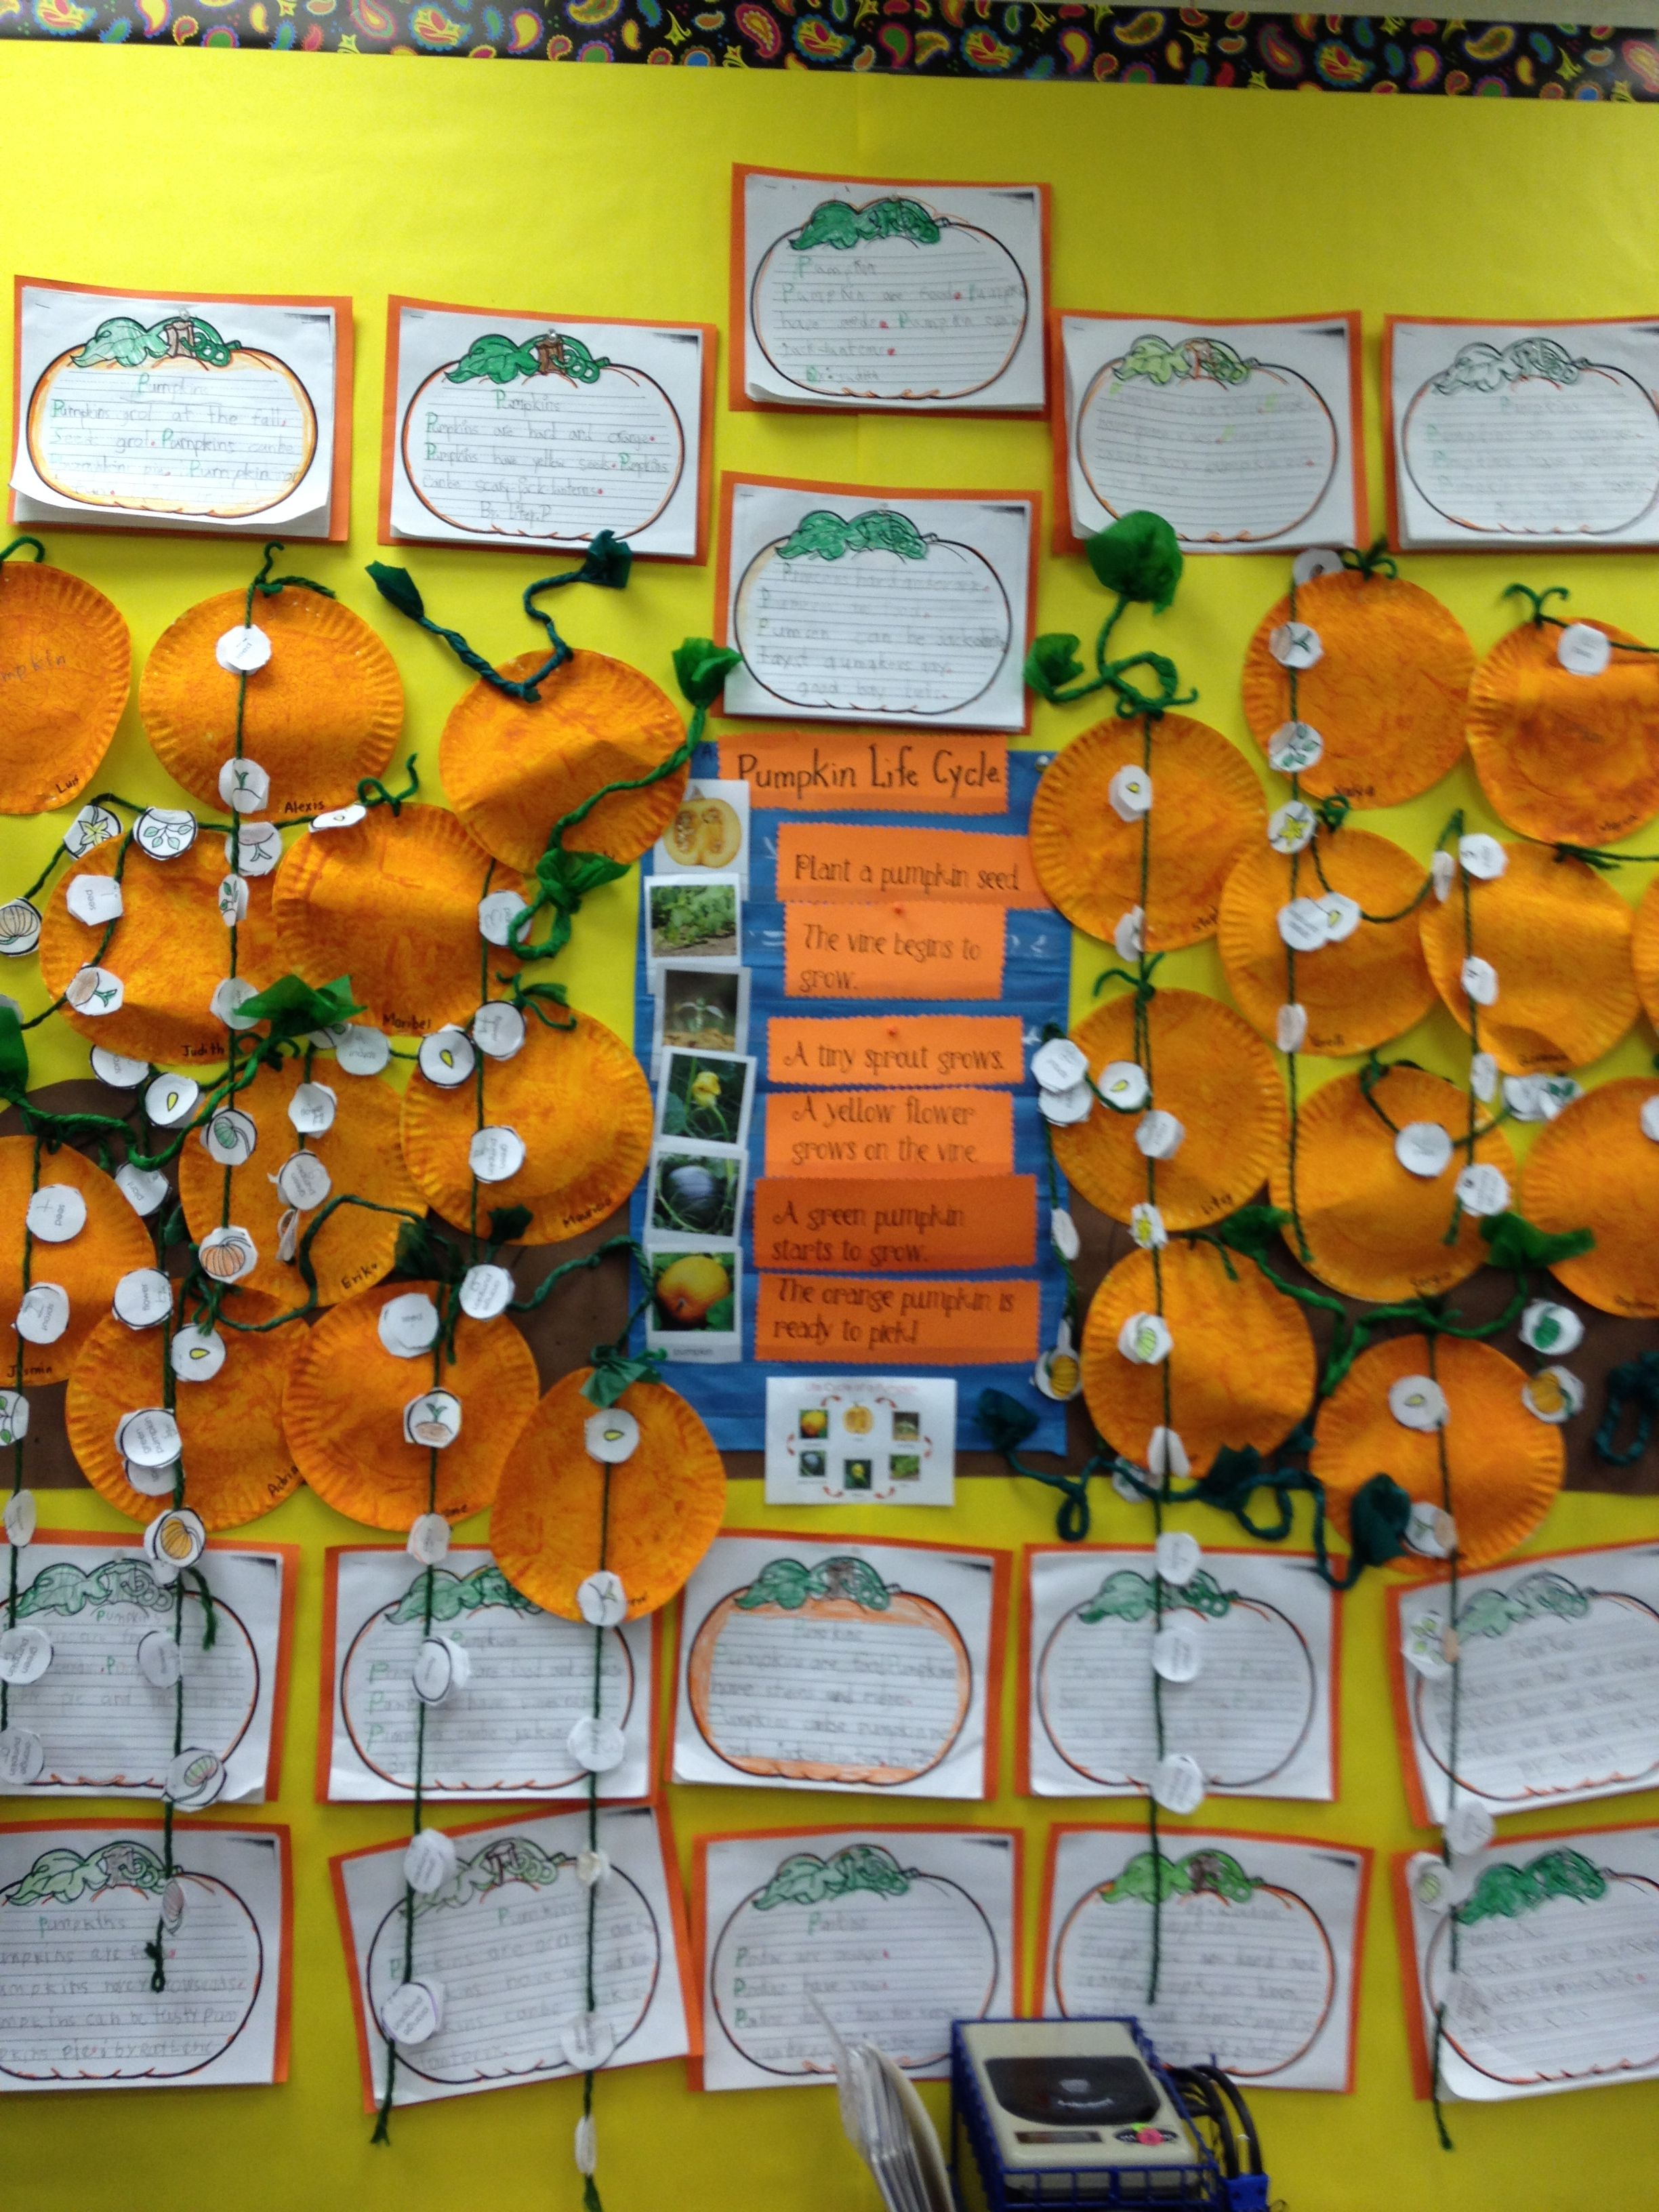 Pumpkin Life Cycle Bulletin Board Display